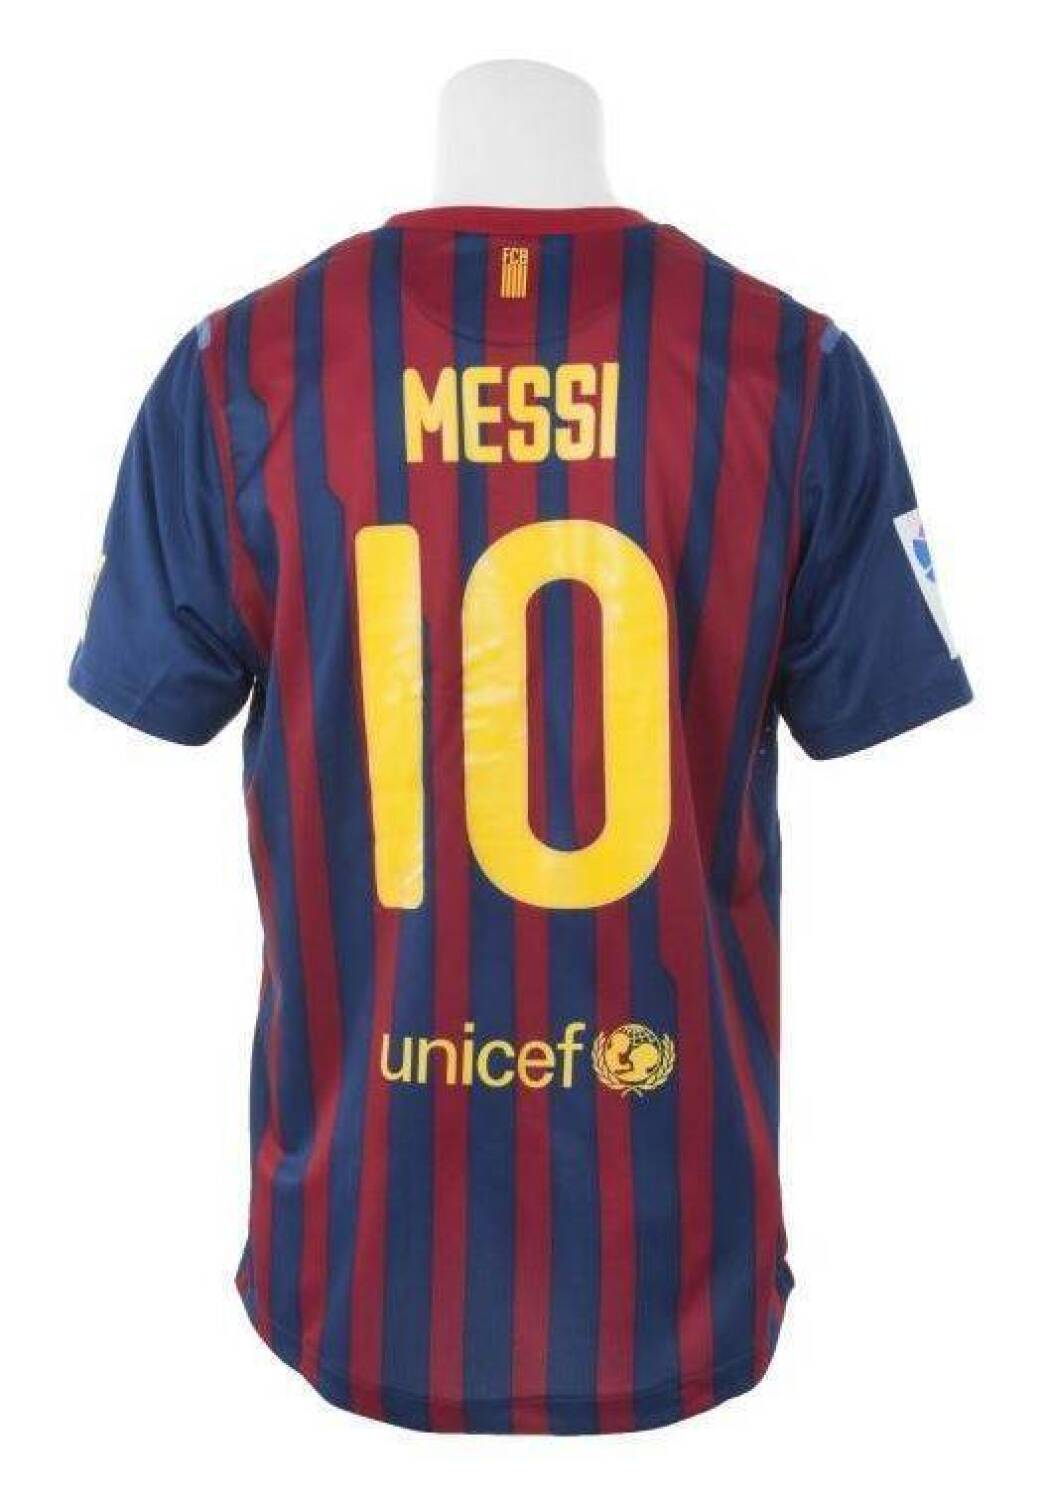 47abe26d3 LIONEL MESSI 2011-12 FC BARCELONA GAME WORN JERSEY - Current price   1100